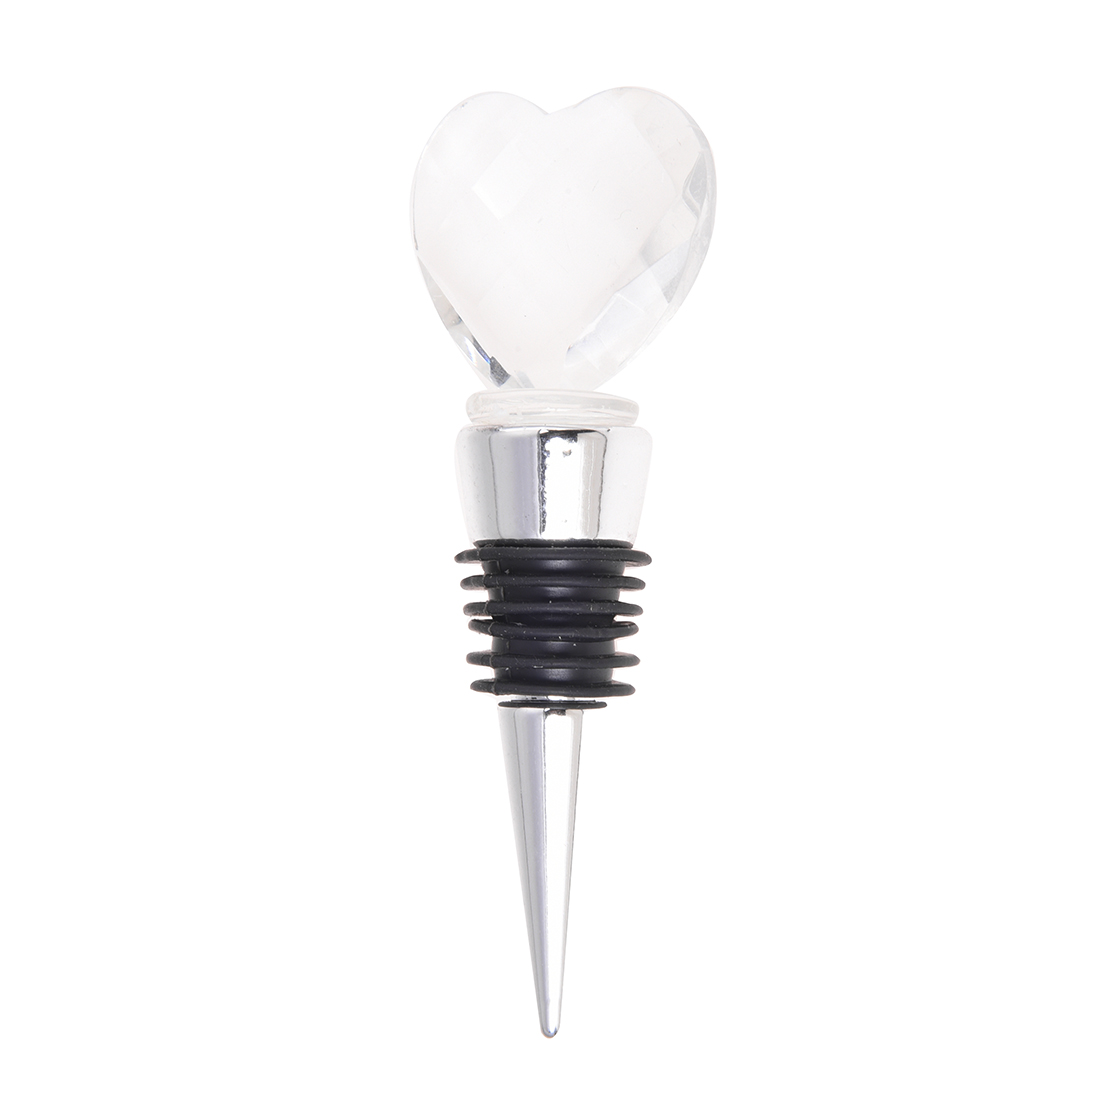 Buy bottle stopper chrome and get free shipping on AliExpress.com